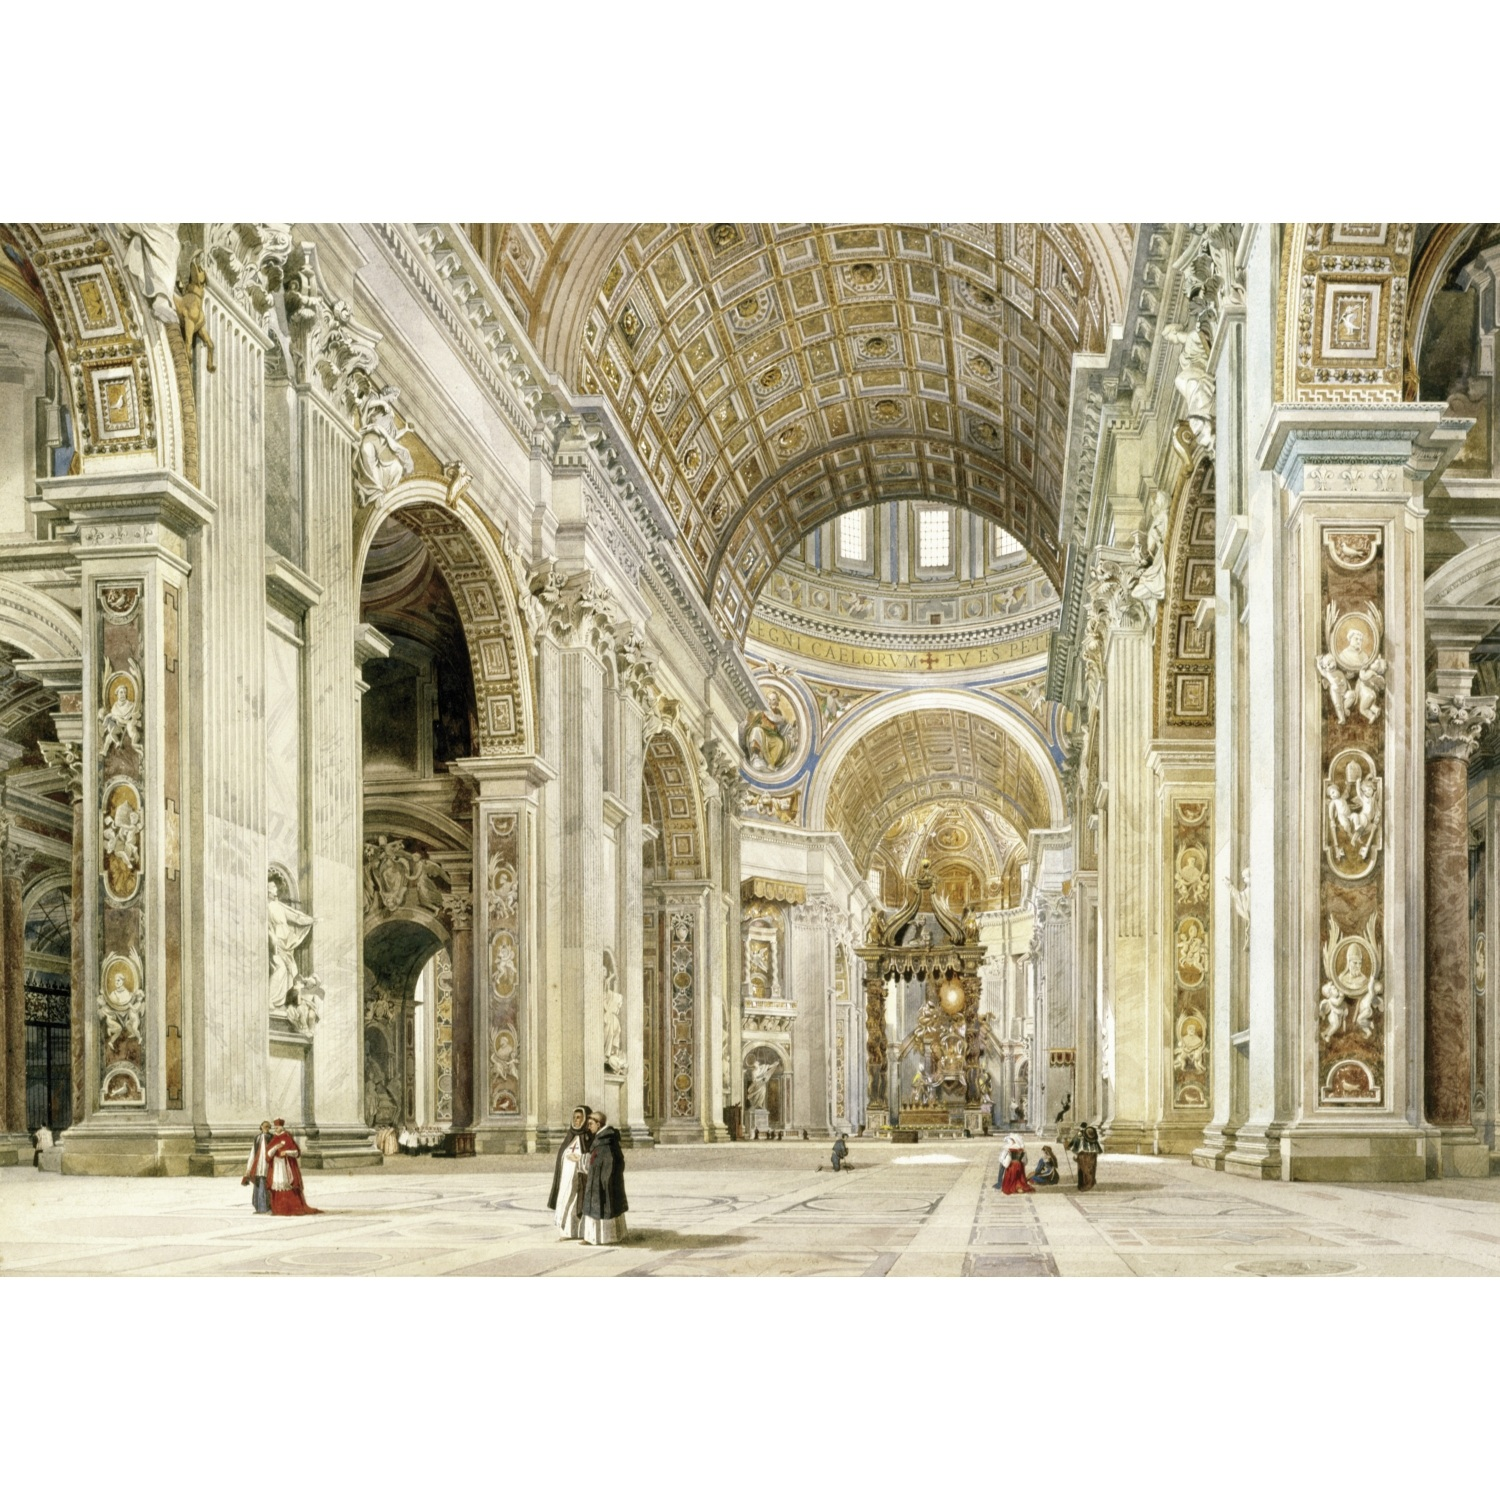 Wentworth Interior of St Peter's Rome